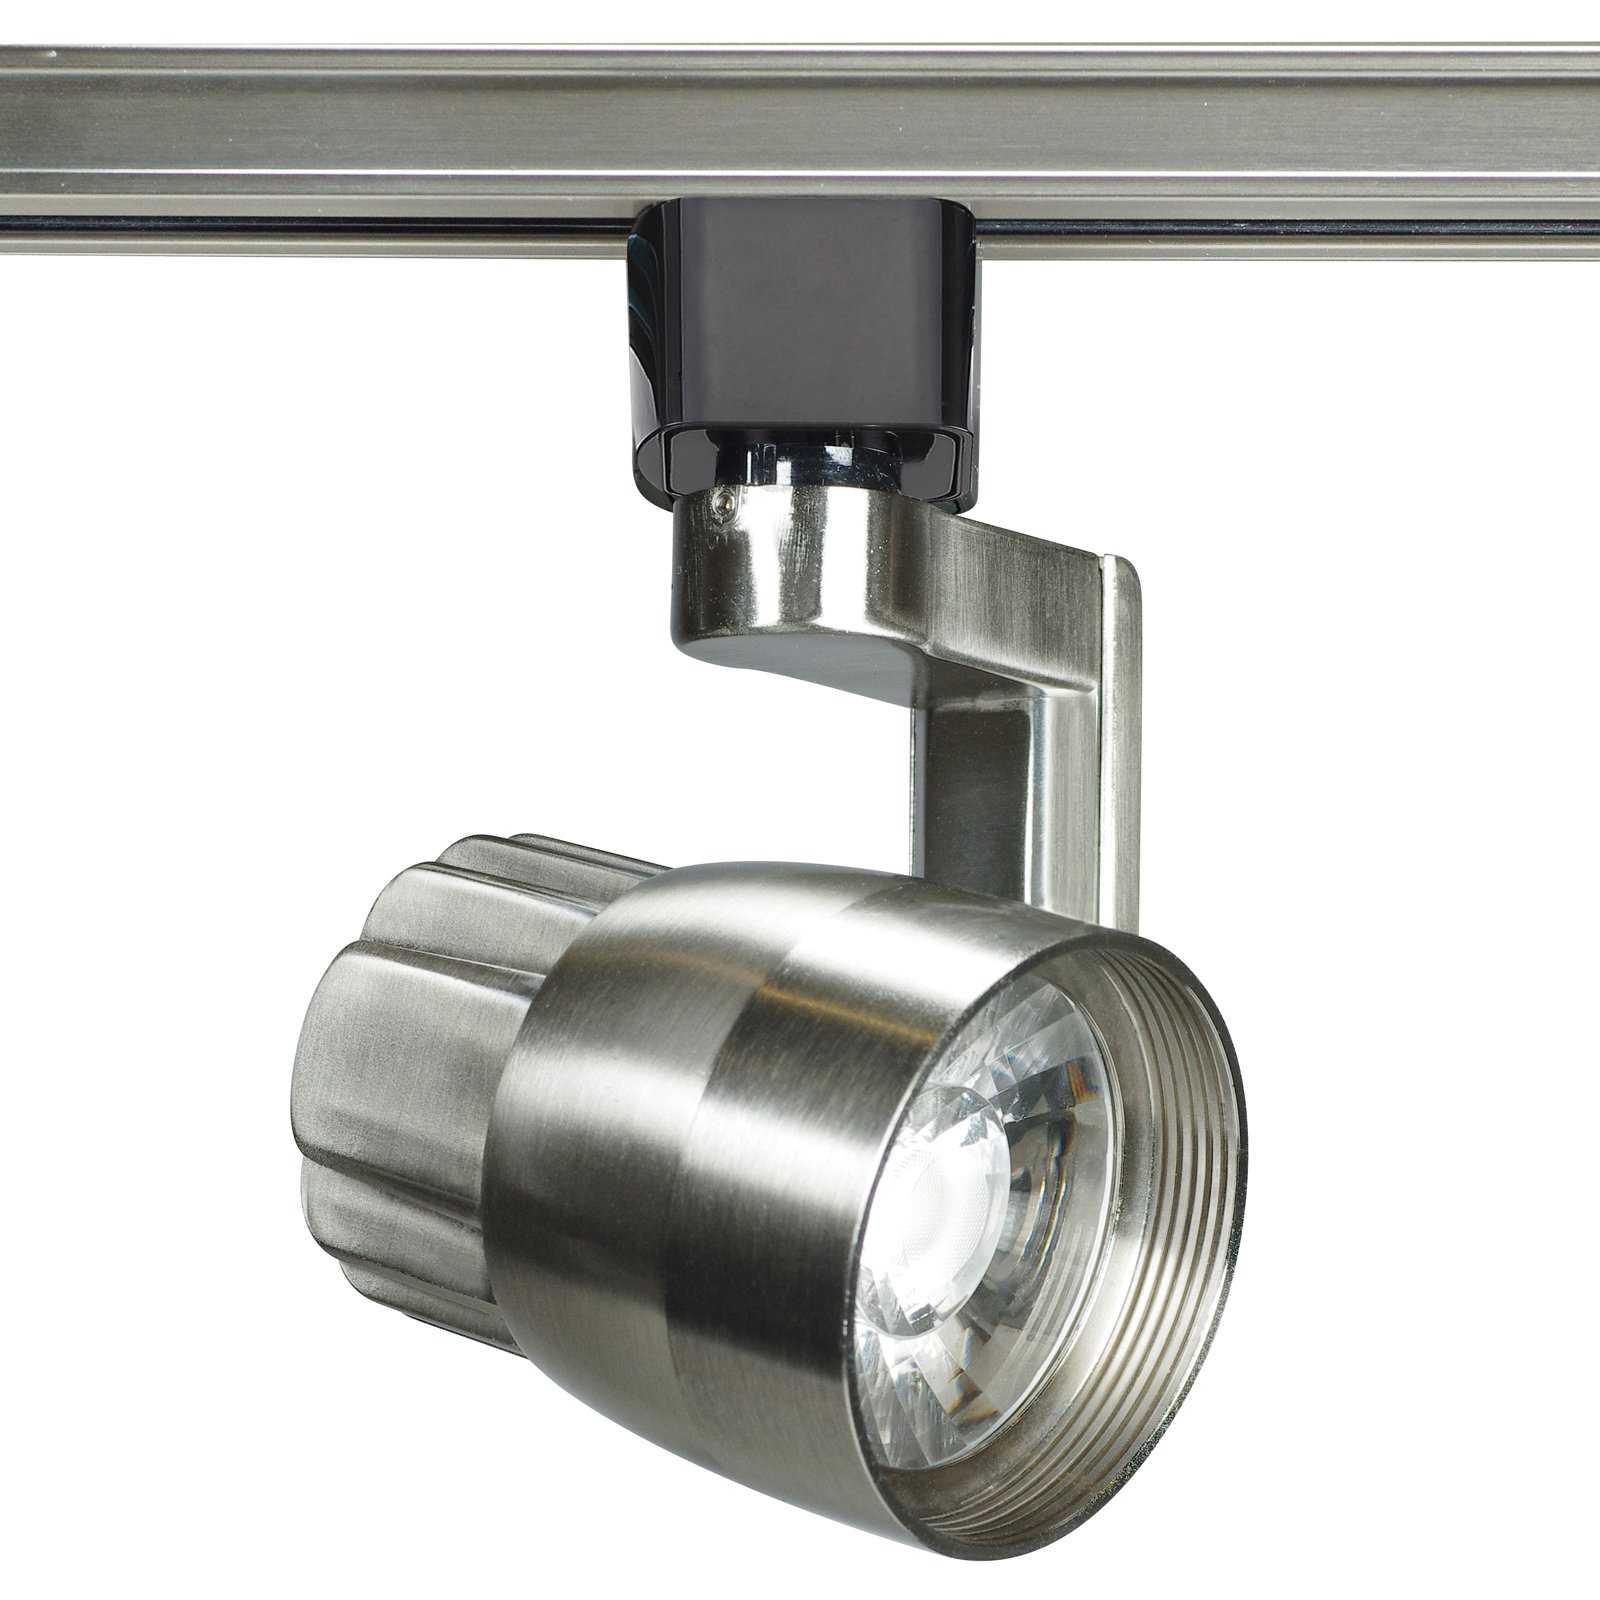 Nuvo TH Track Light Head by Nuvo Lighting